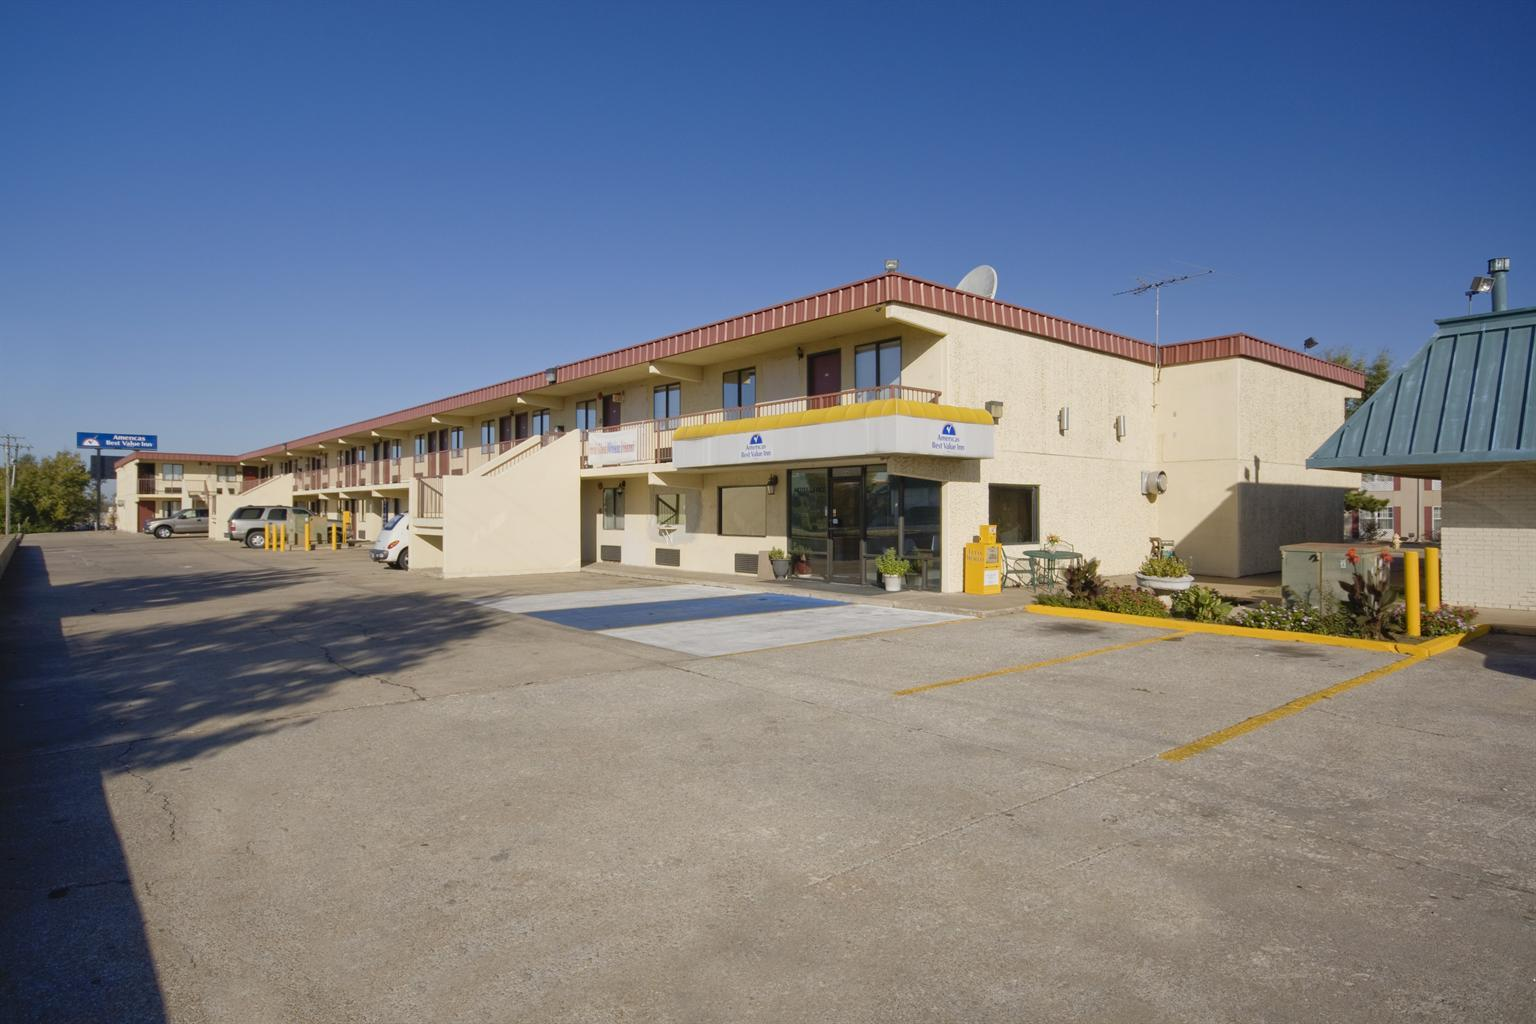 Americas best value inn tulsa airport coupons near me in for Americas best coupons